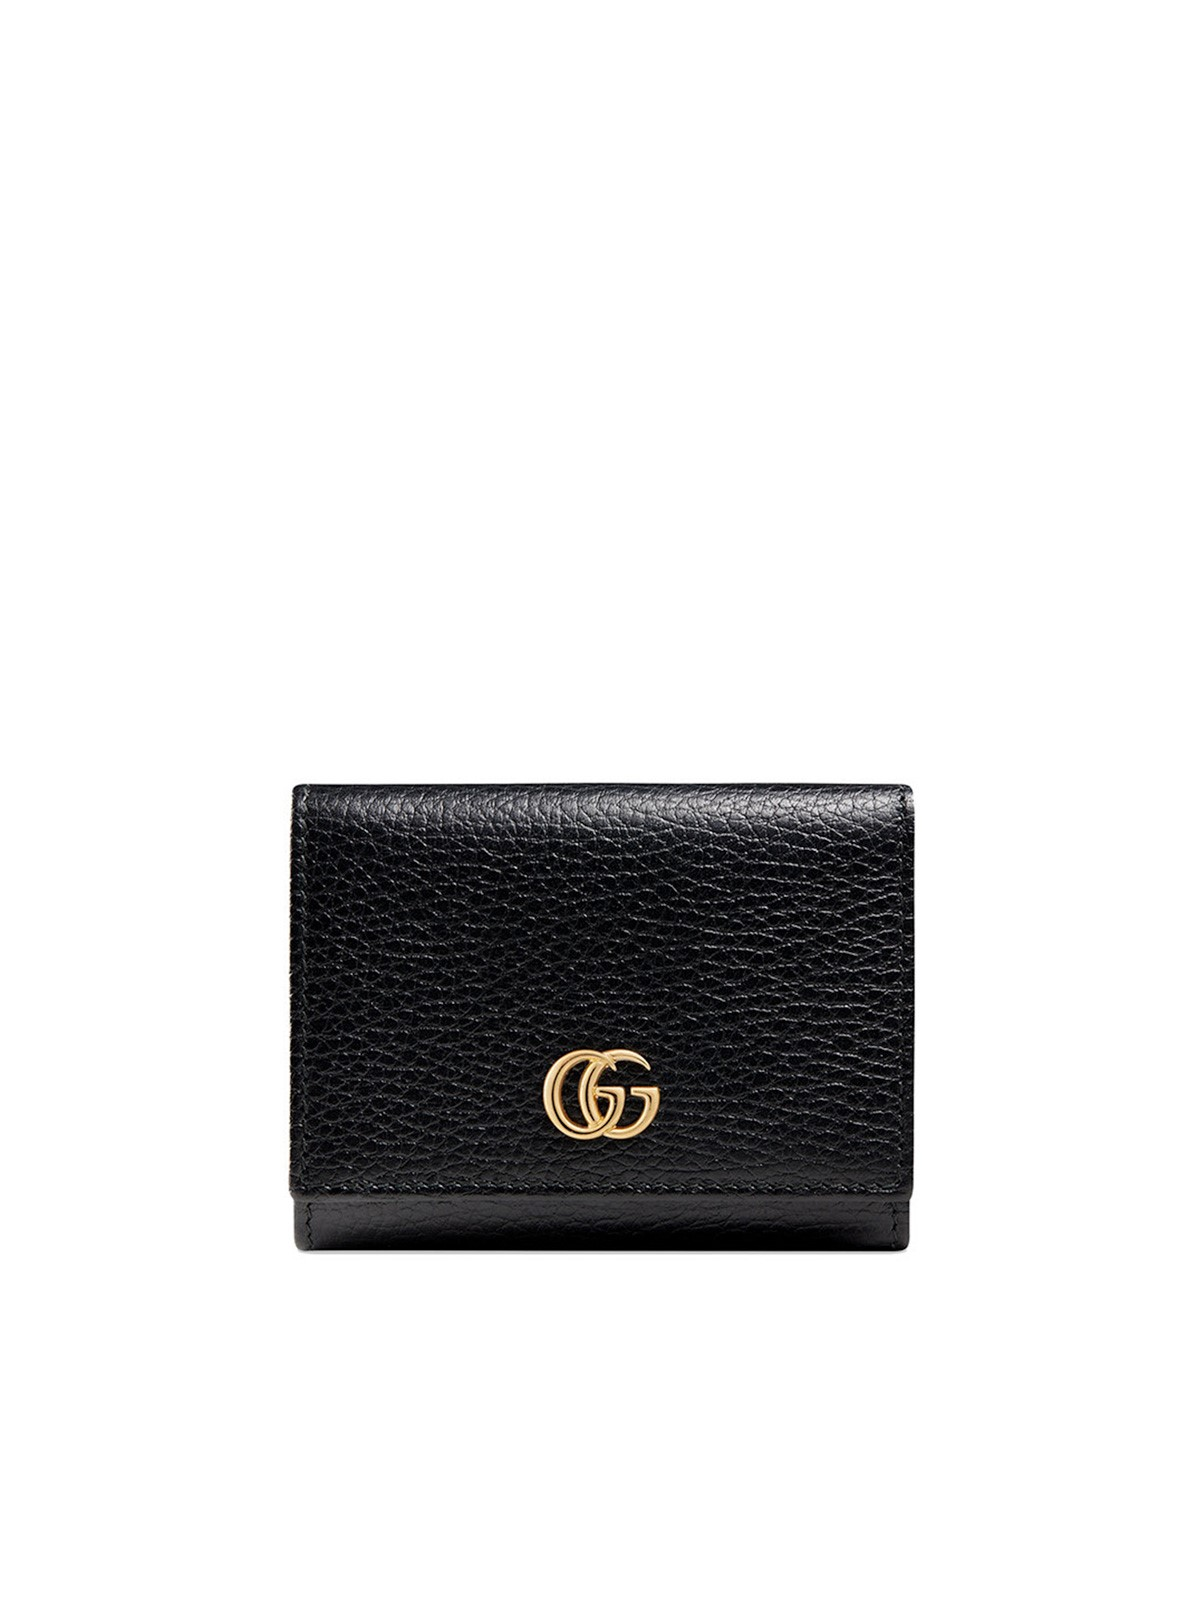 a5114f0541cb gucci GG MARMONT WALLET available on montiboutique.com - 22760